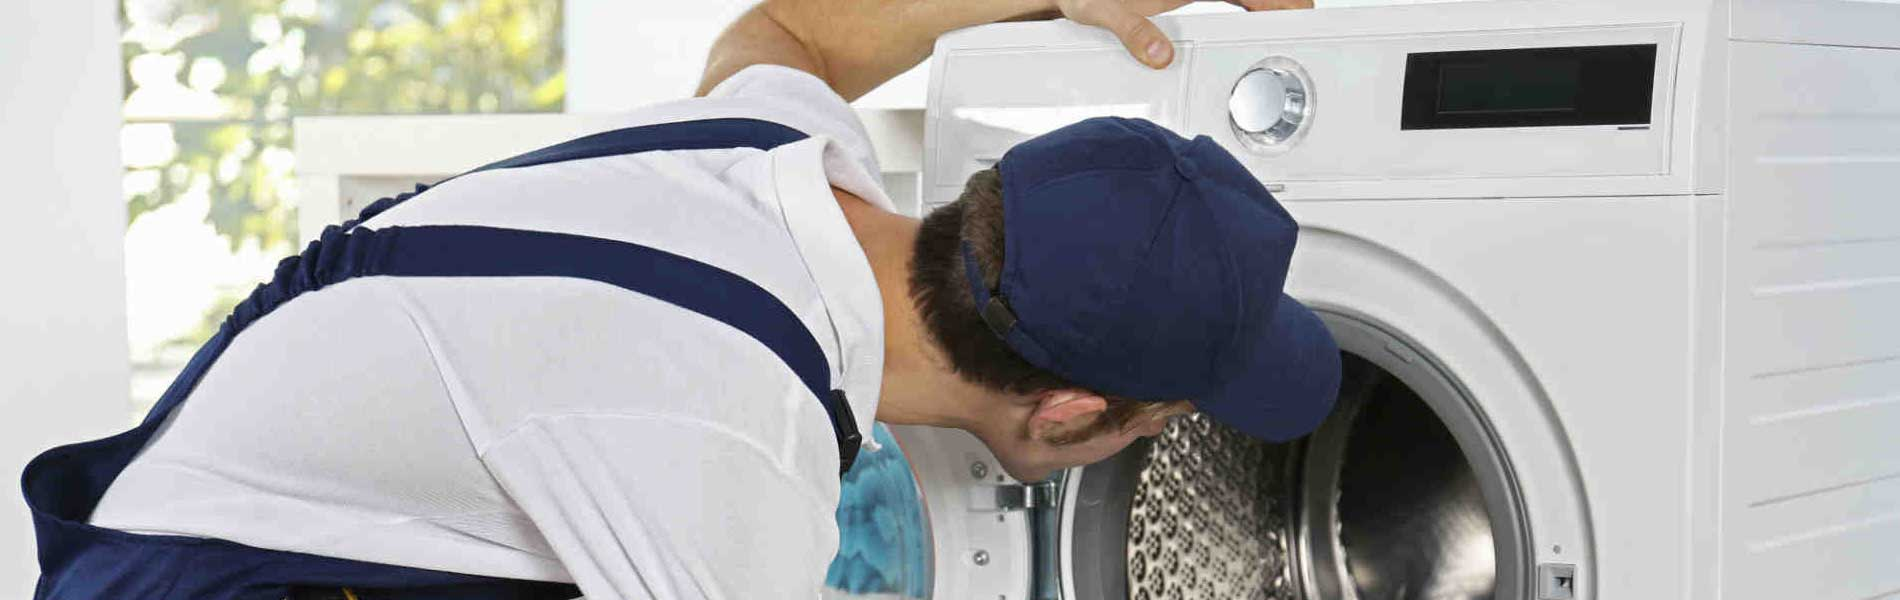 Onida Washing Machine Repair in Vepery